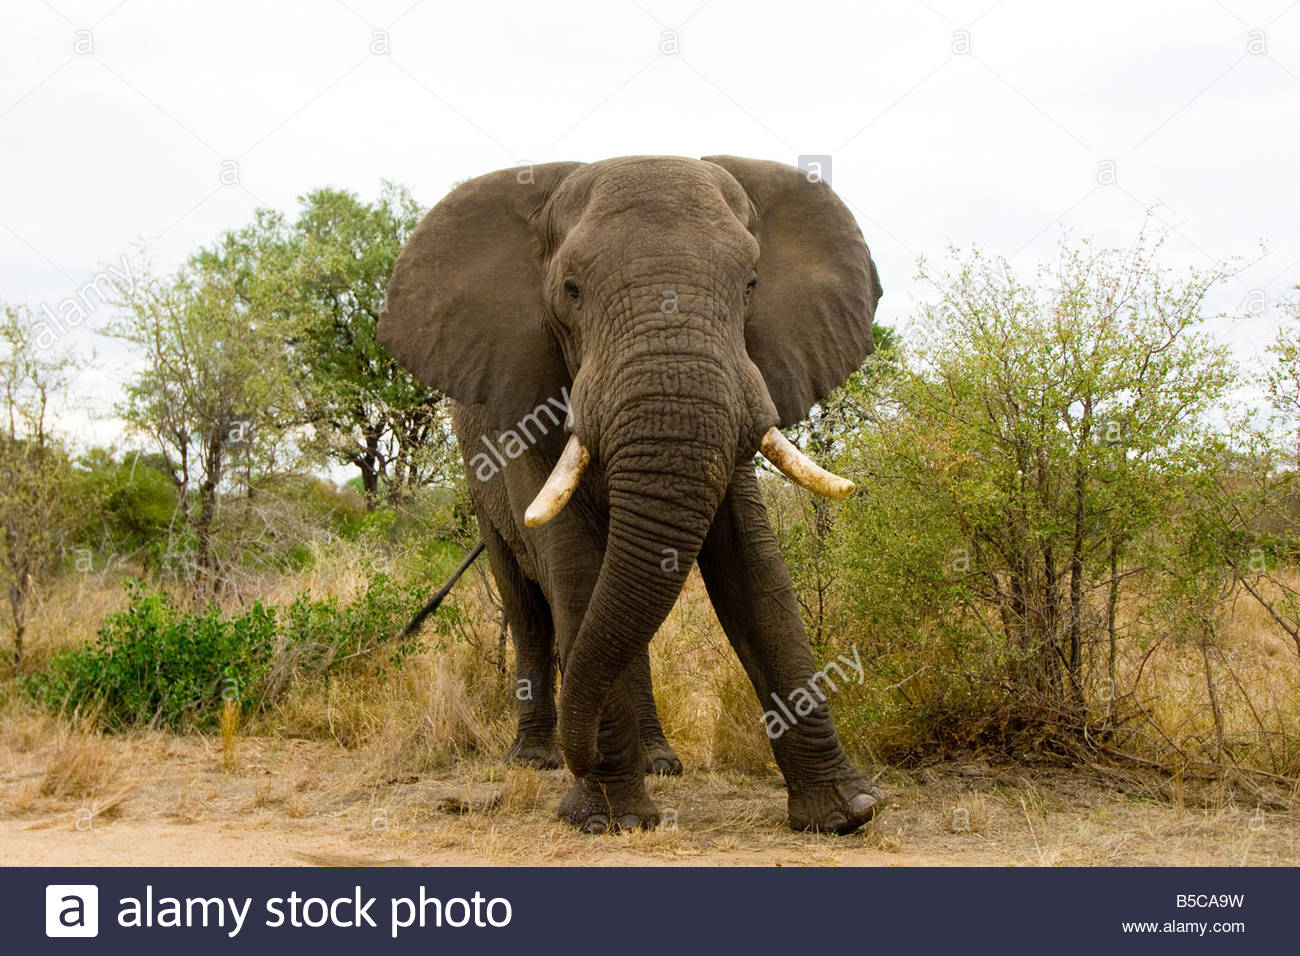 Bull Elephant Parco Nazionale Kruger Sud Africa Immagini Stock